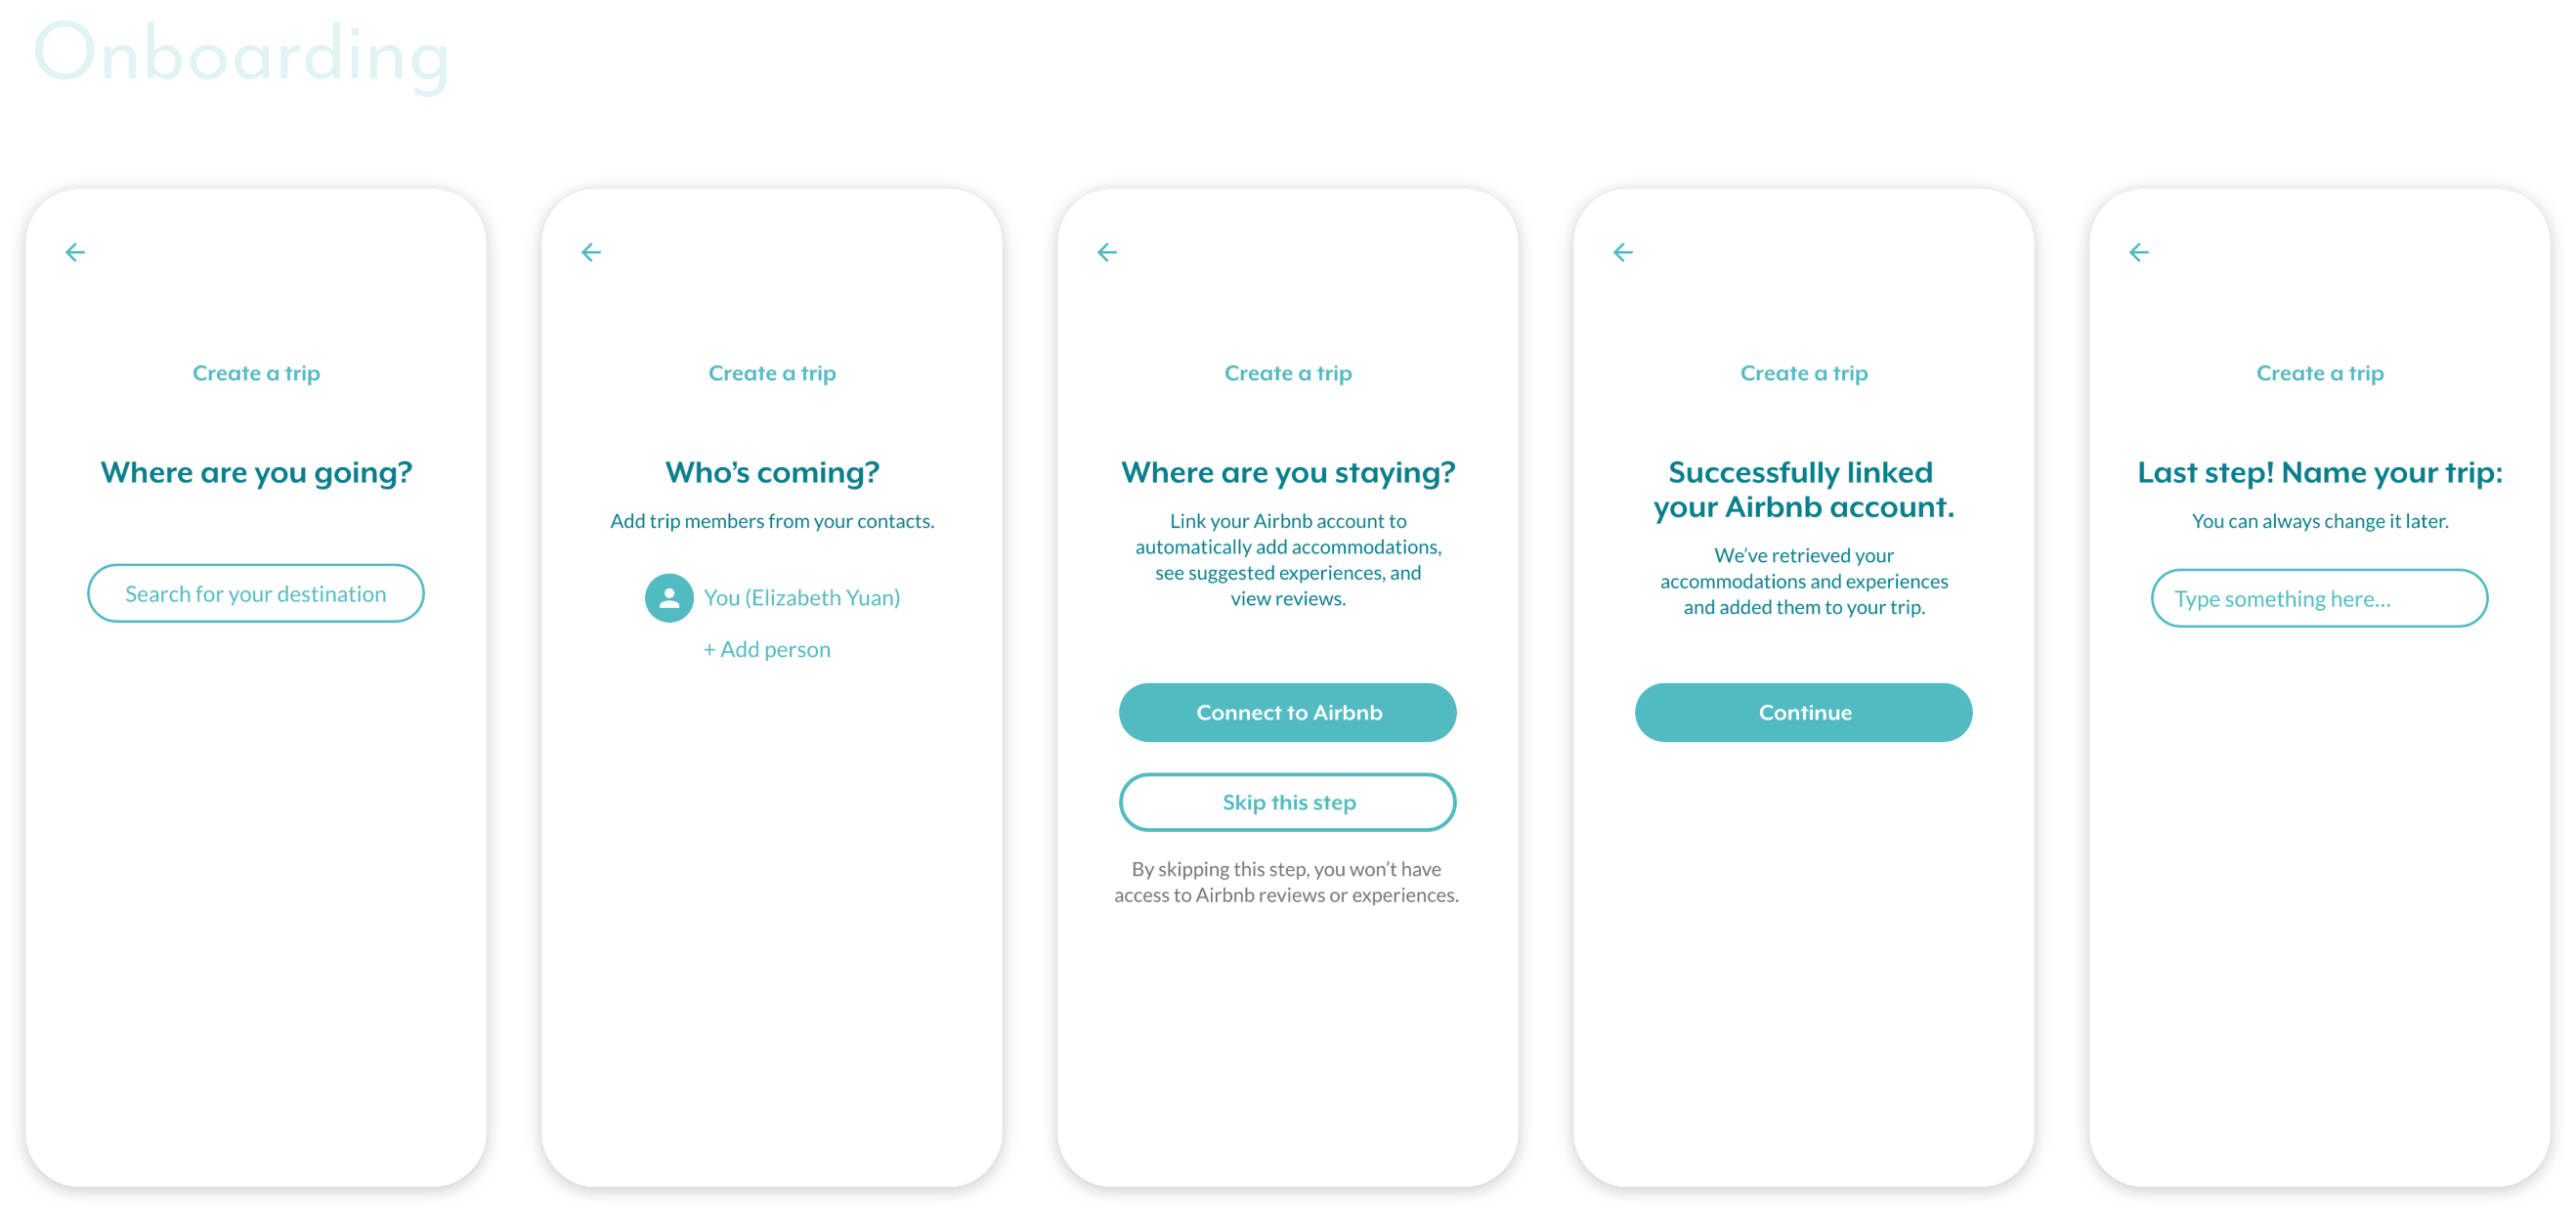 the onboarding flow to set up a trip: location, friends to invite, and Airbnb integration